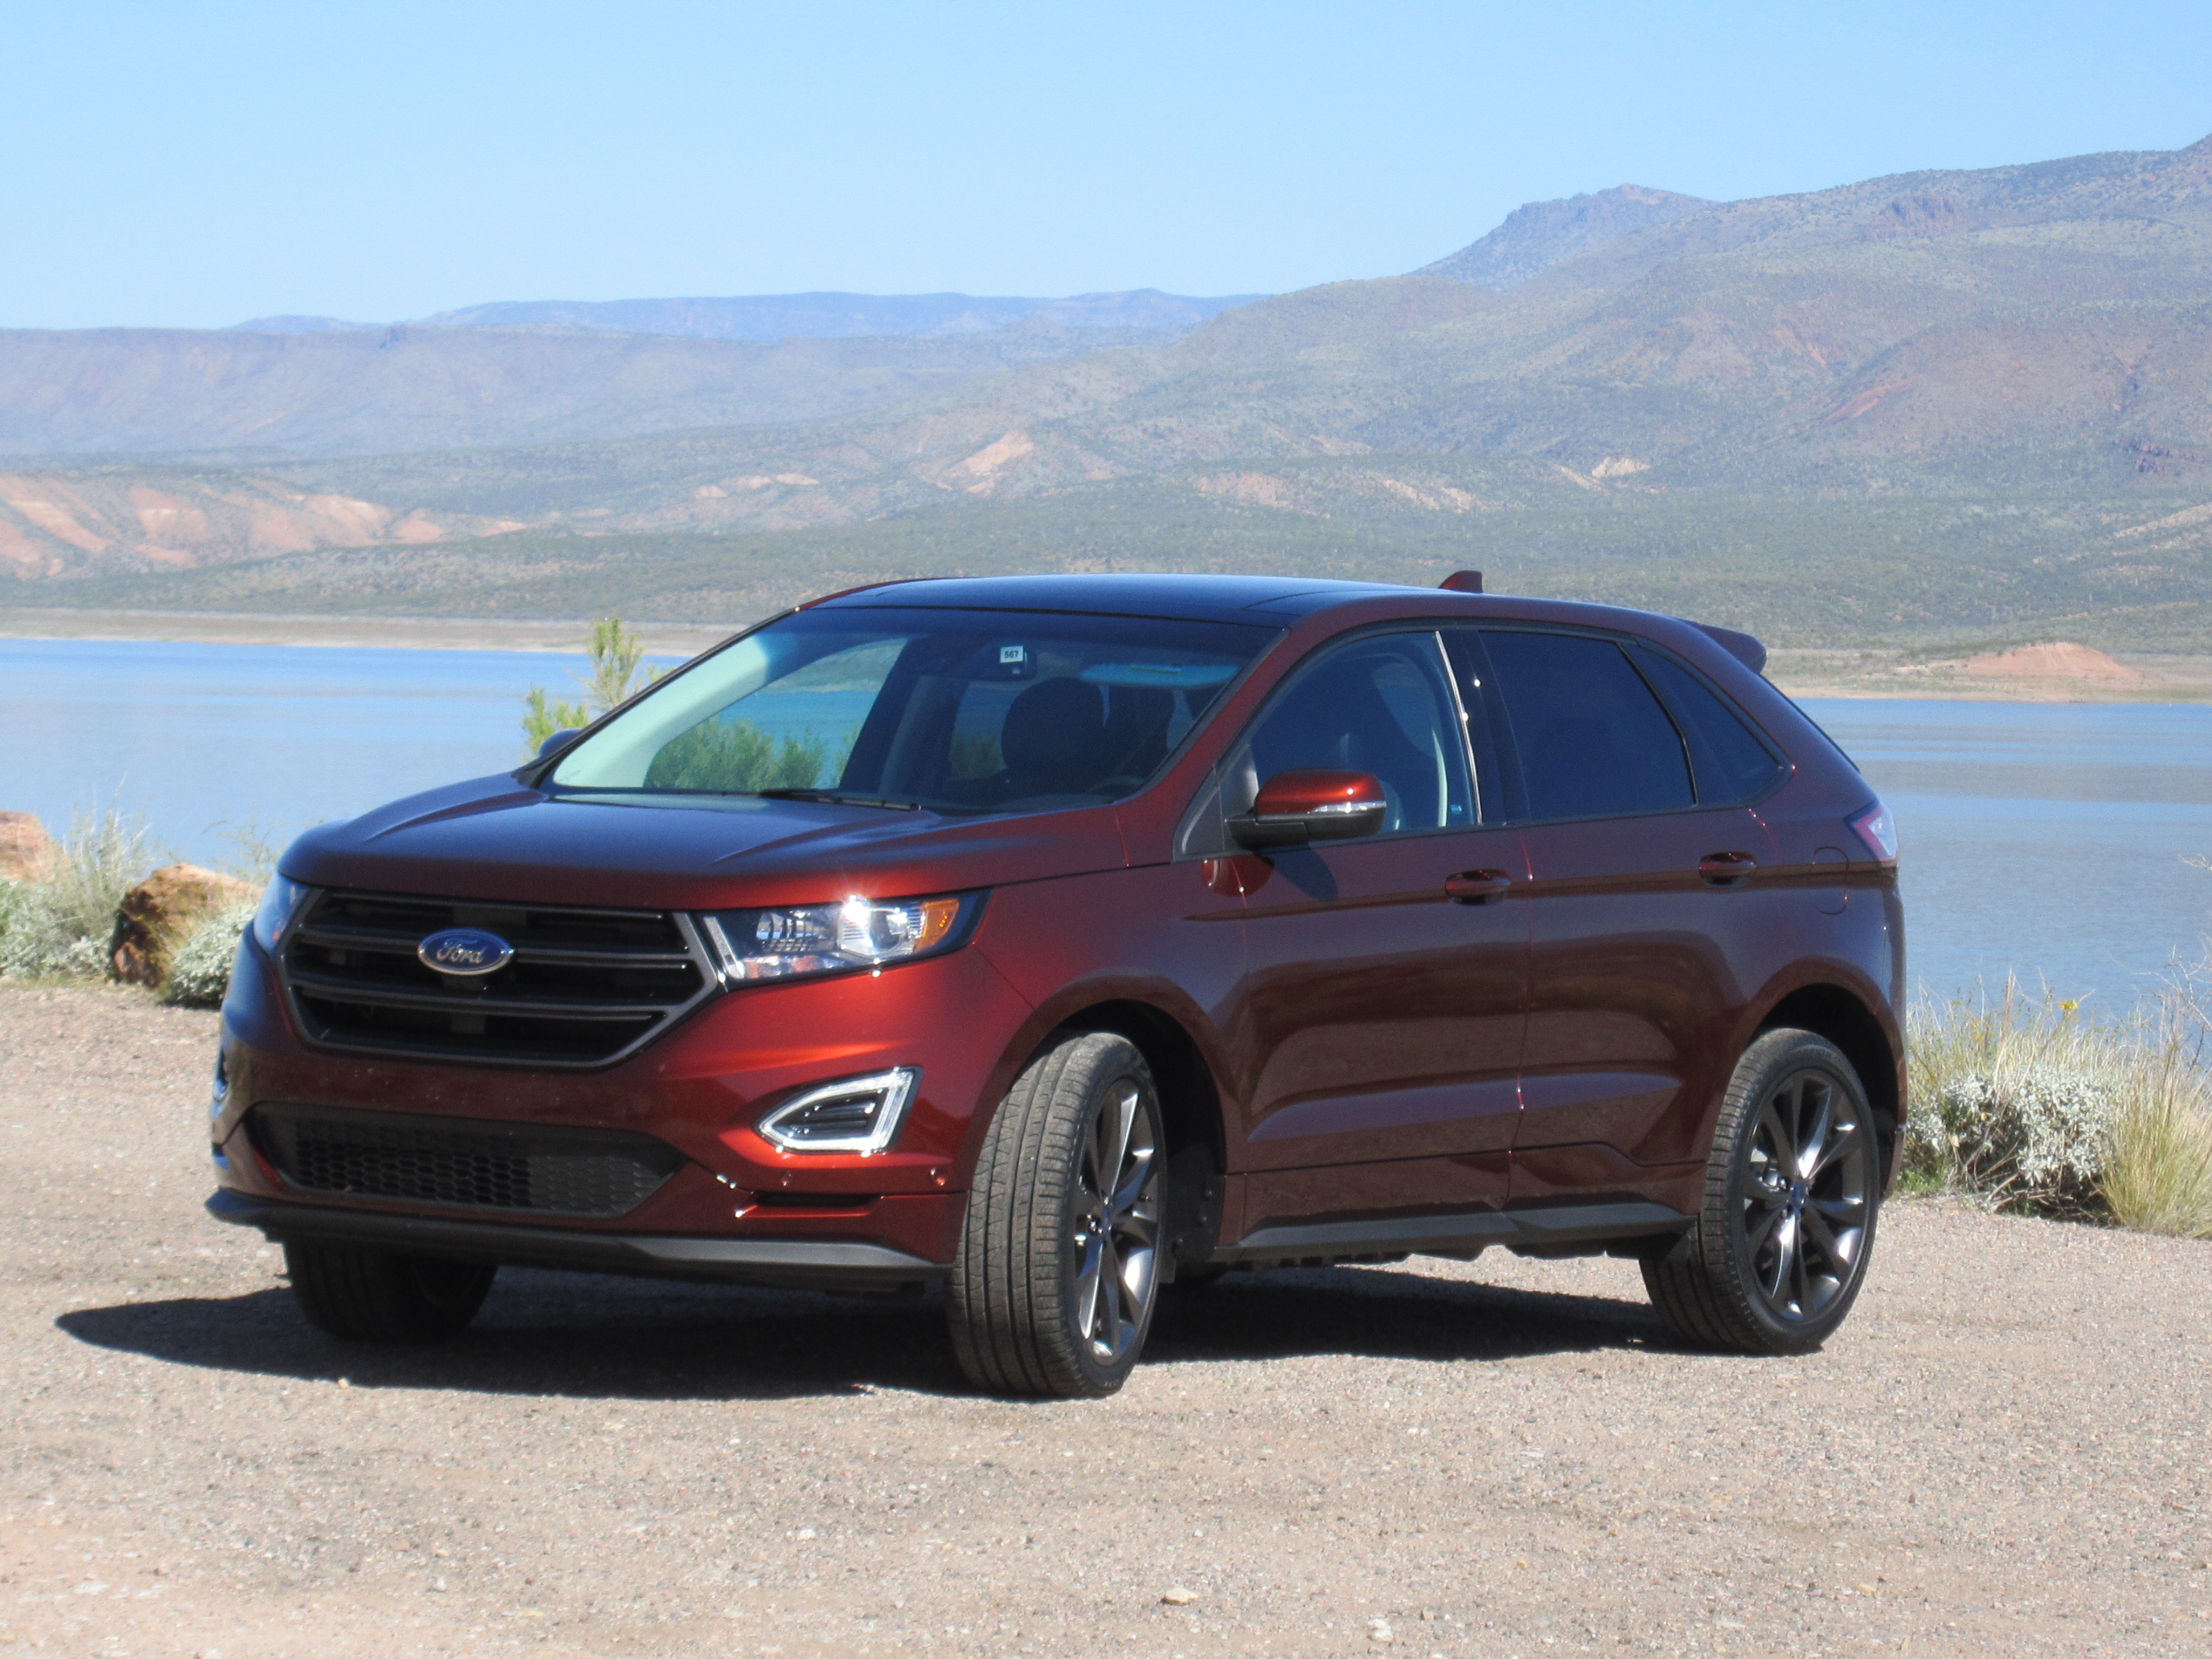 Car Report: Redesigned Ford Edge offers quiet ride, better look